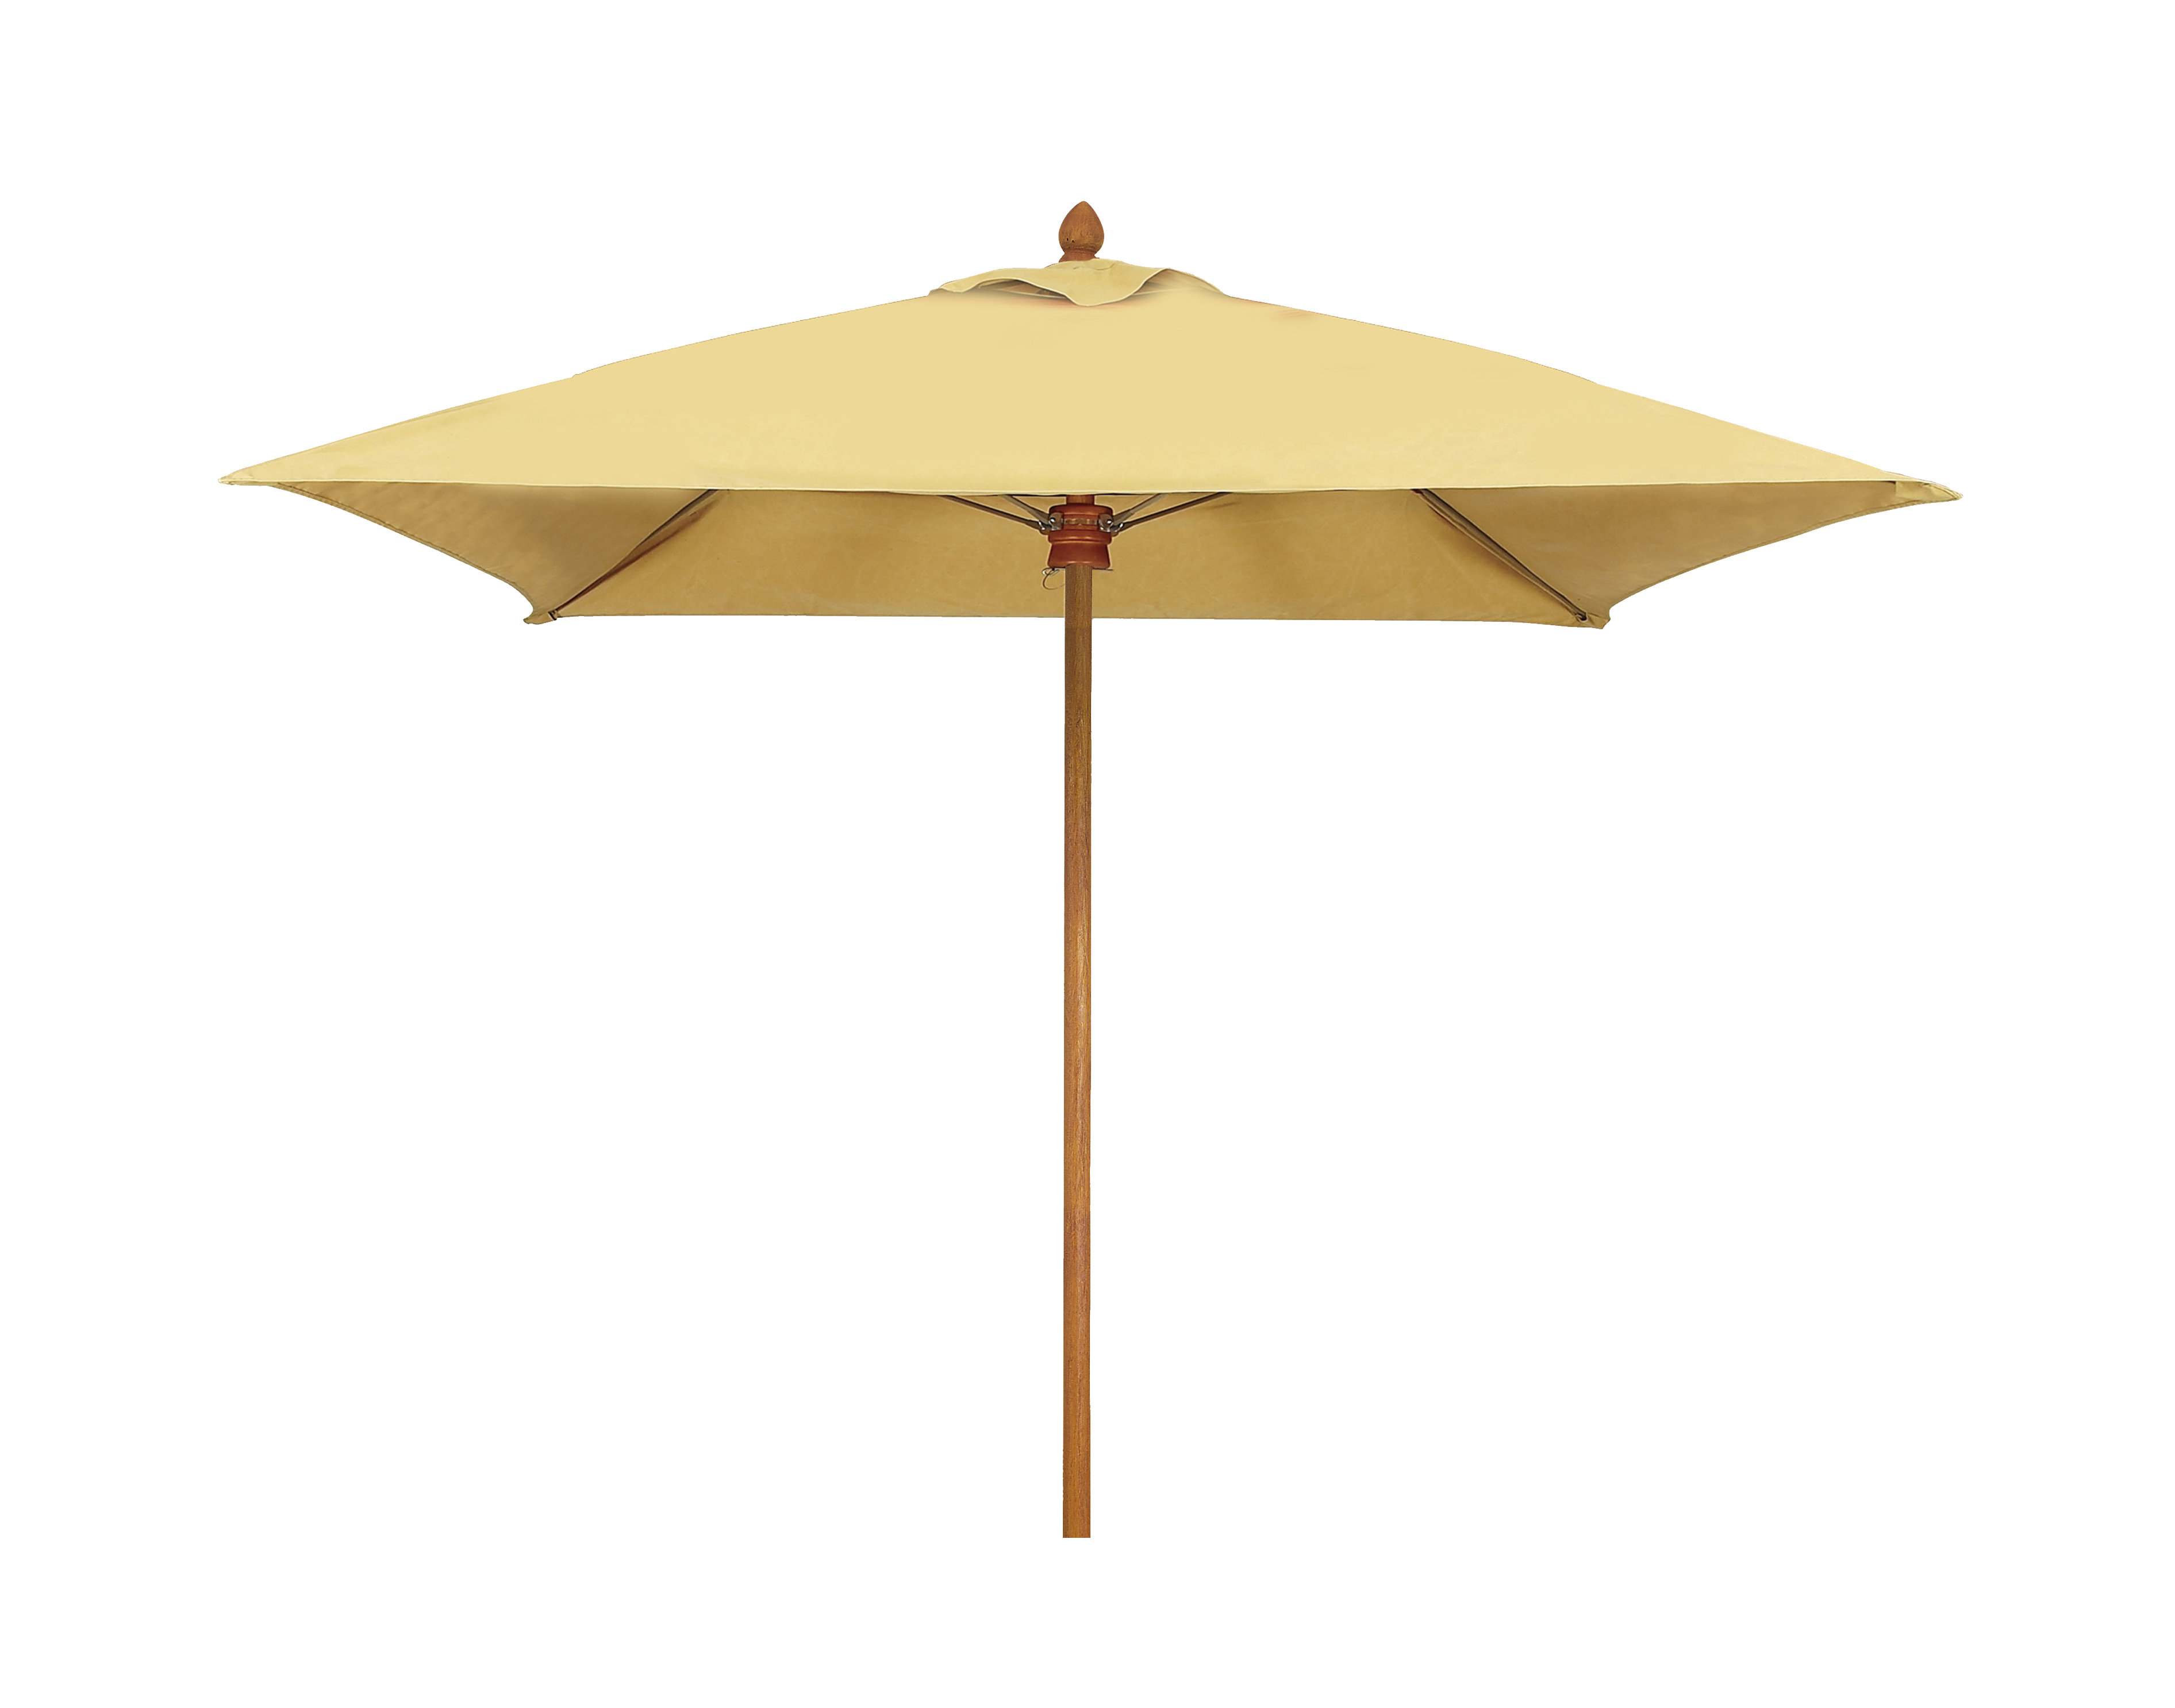 2020 Prestige 6' Square Market Umbrella Throughout Priscilla Market Umbrellas (Gallery 9 of 20)